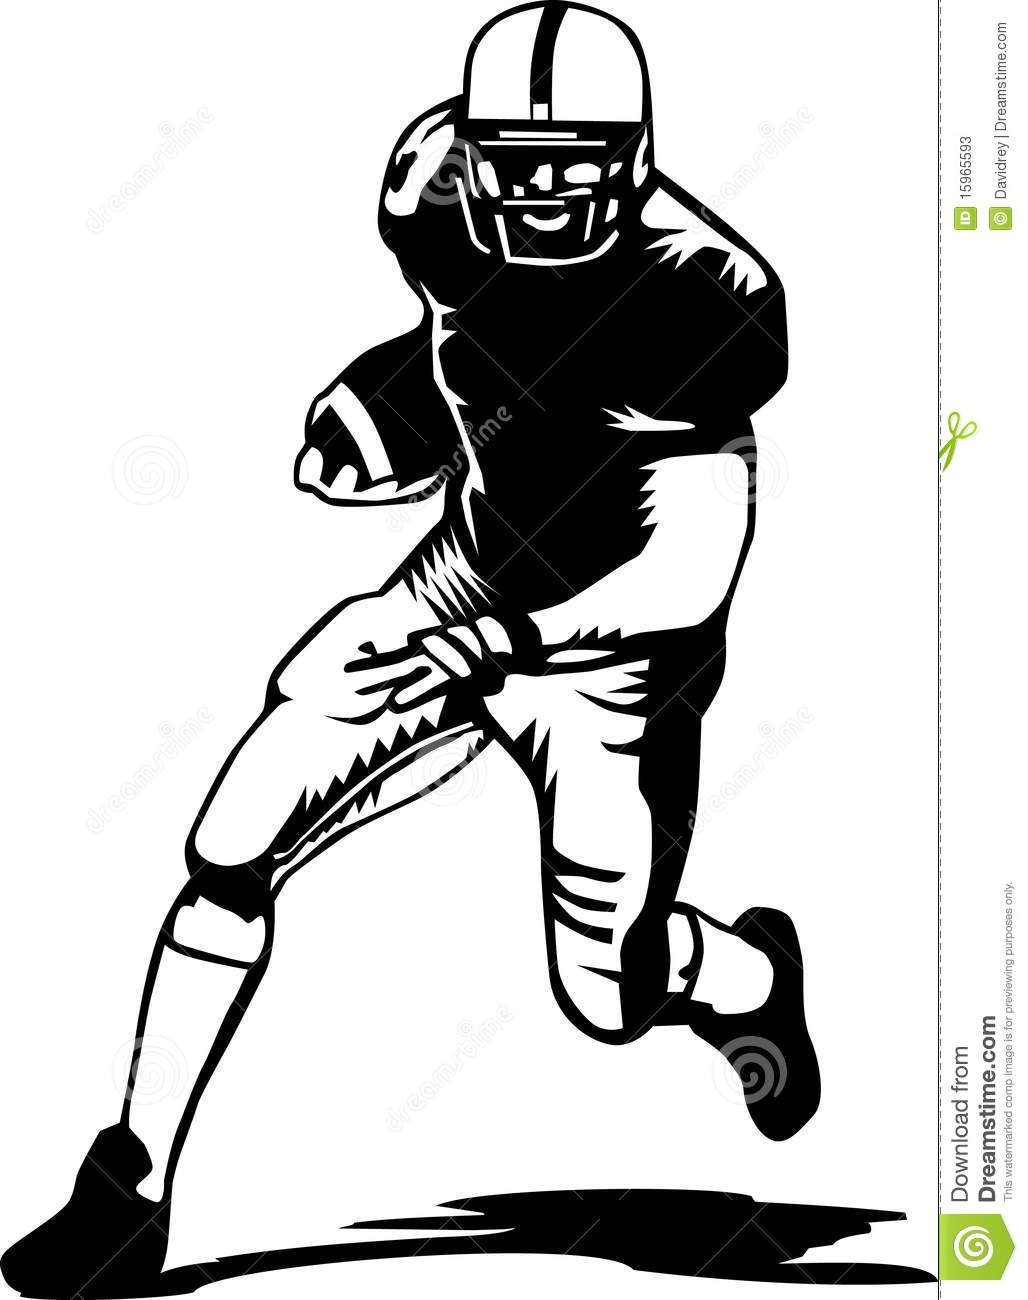 1028x1300 Vintage Football Player Clipart